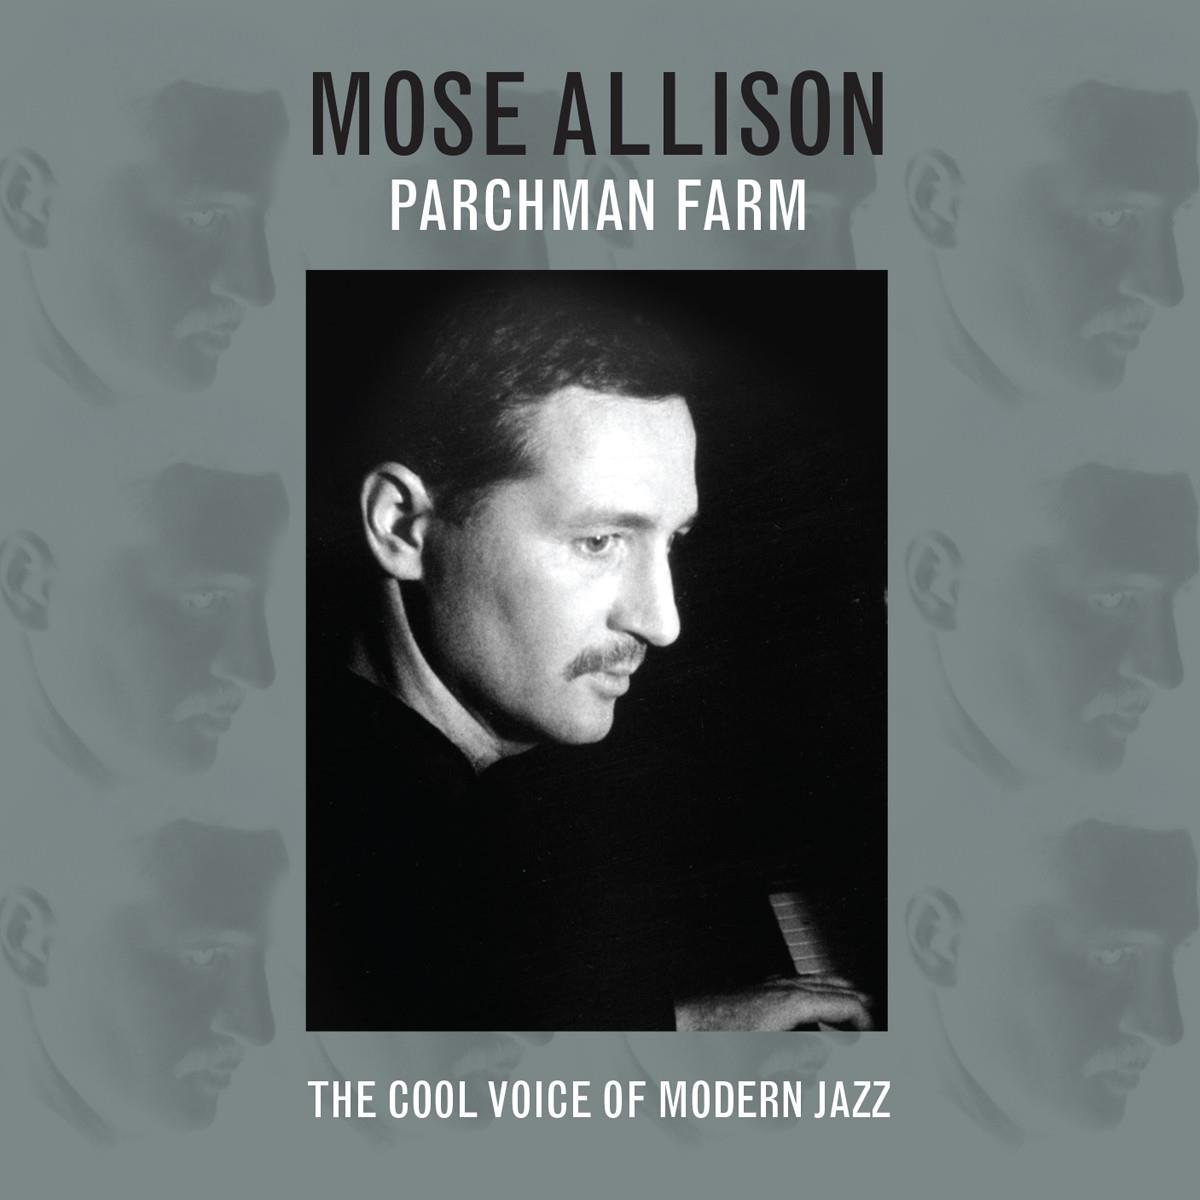 Cd plošča ALLISON M.- PARCHMAN FARM 2CD